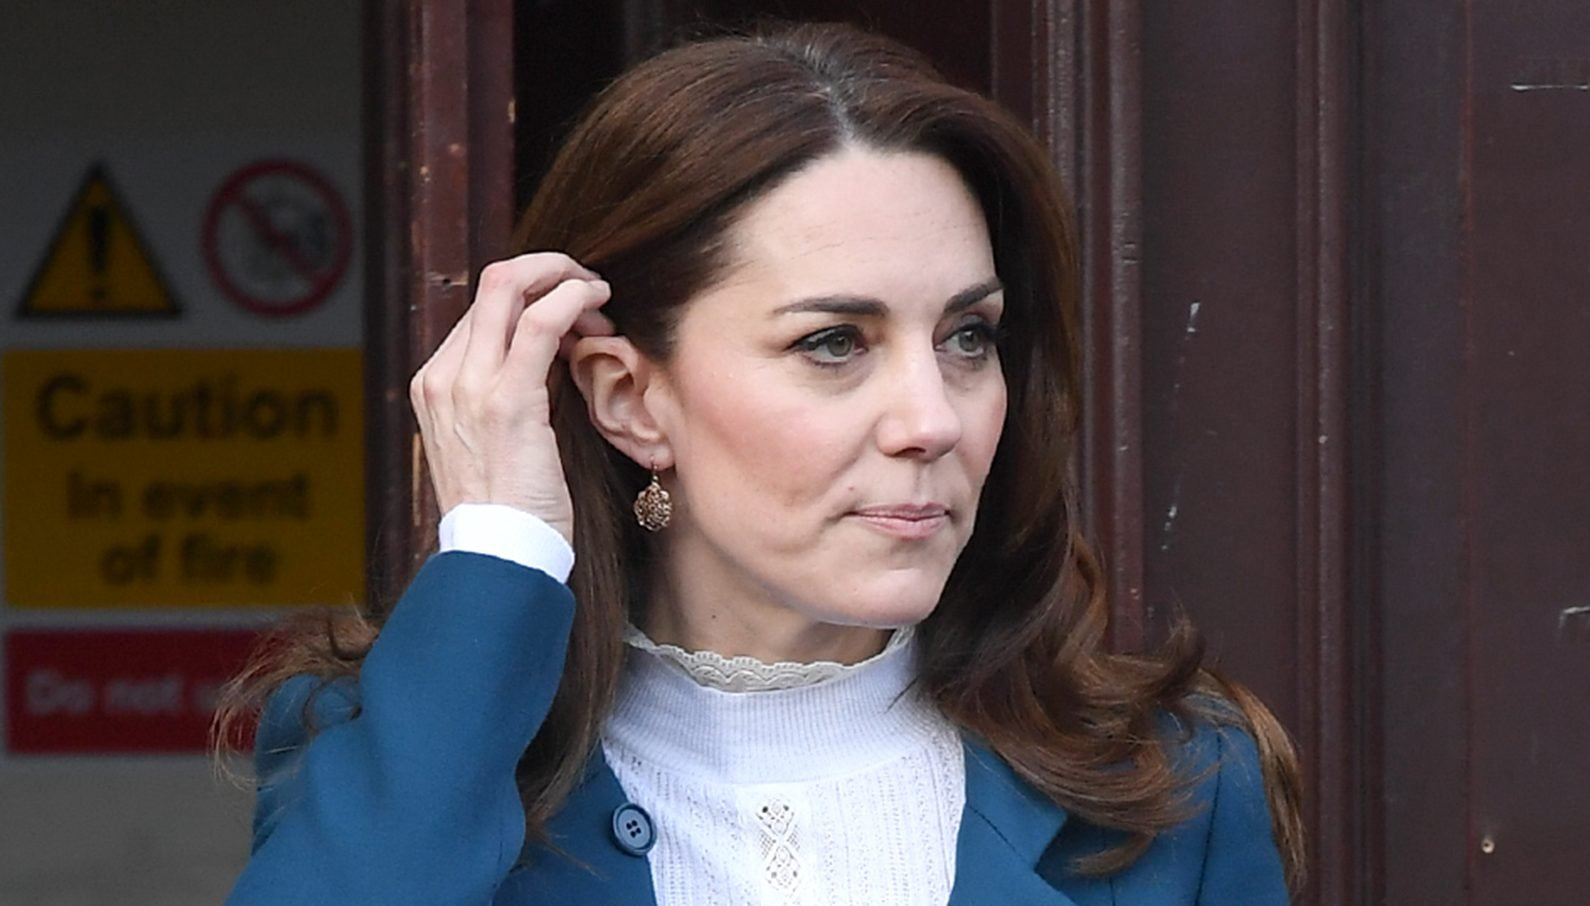 Duchess of Cambridge having 'bouts of anxiety' following Harry and Meghan's departure